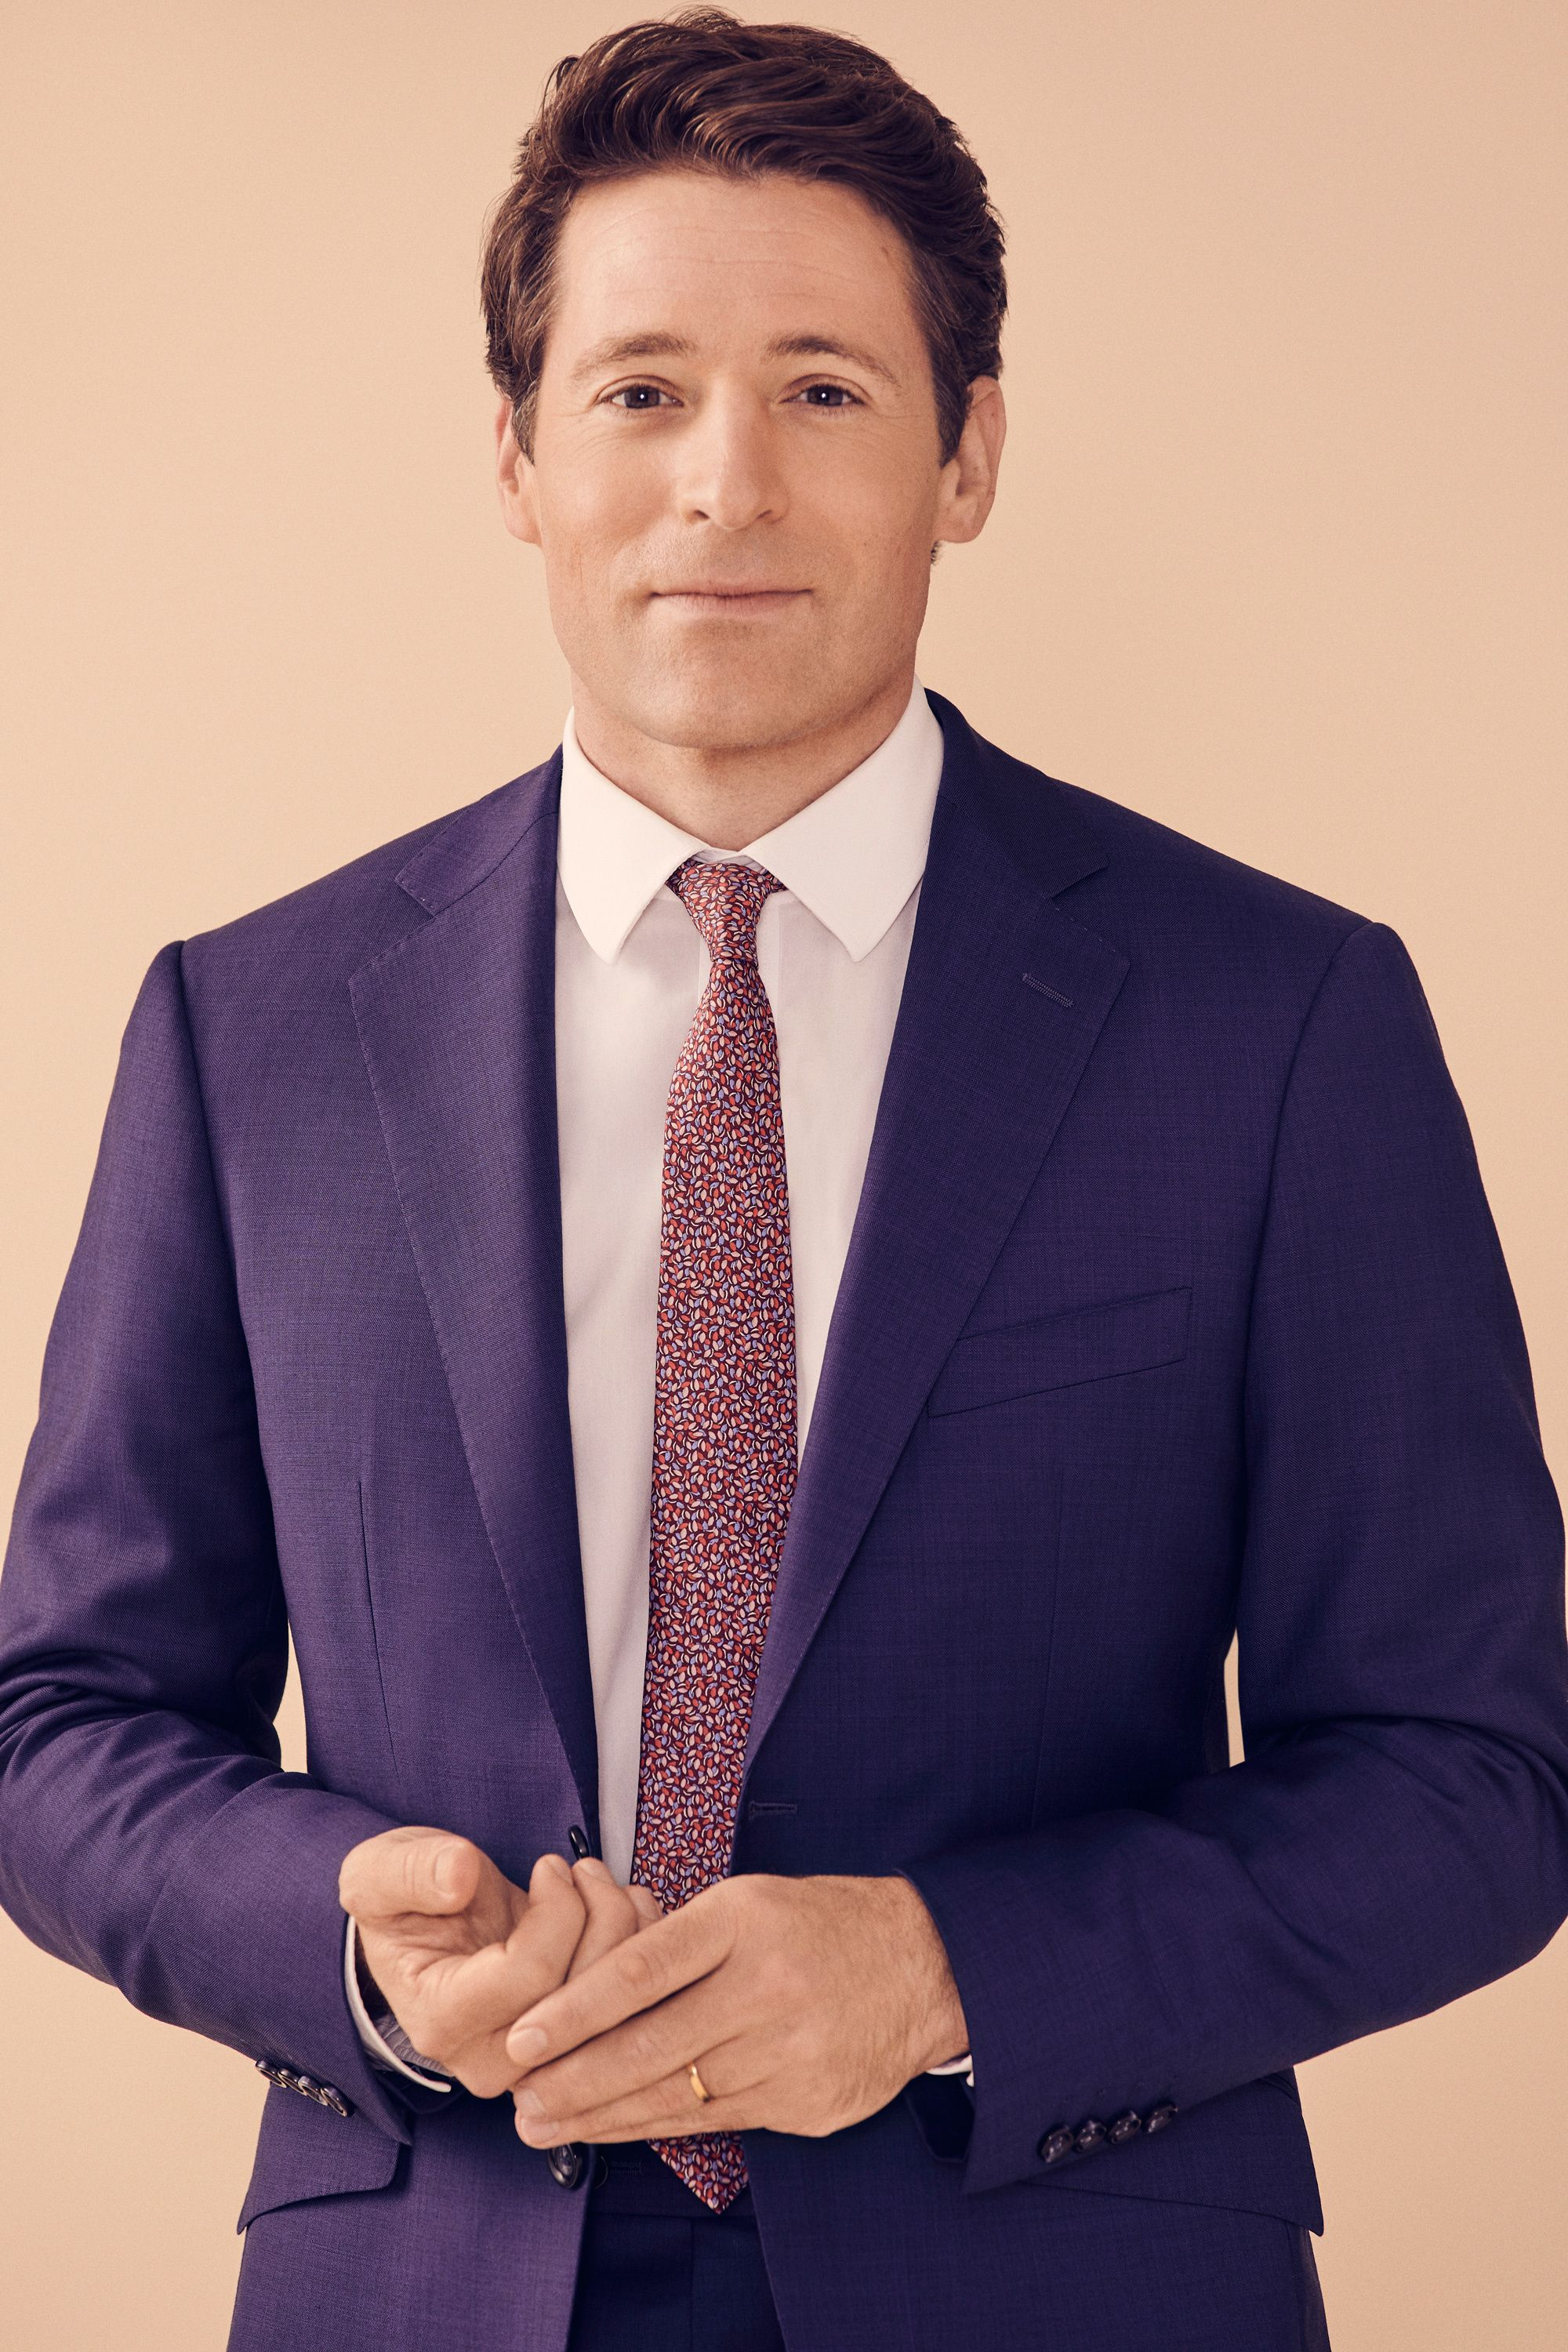 Tony Dokoupil of CBS This Morning